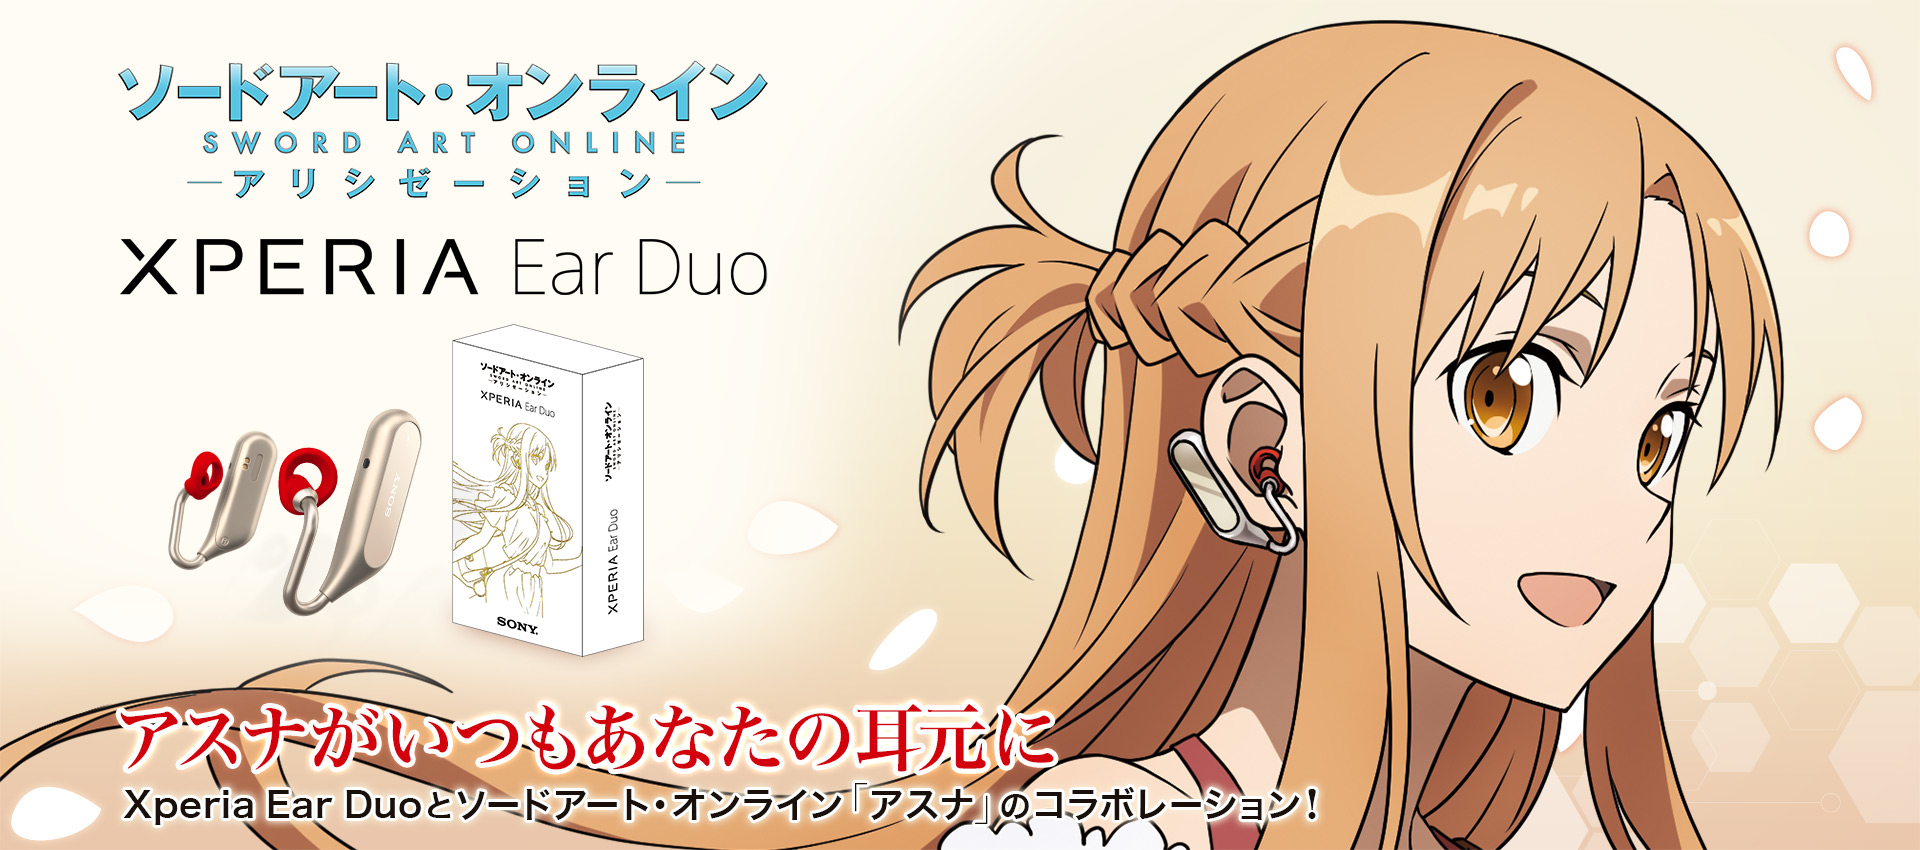 Xperia Ear Duo Asuna